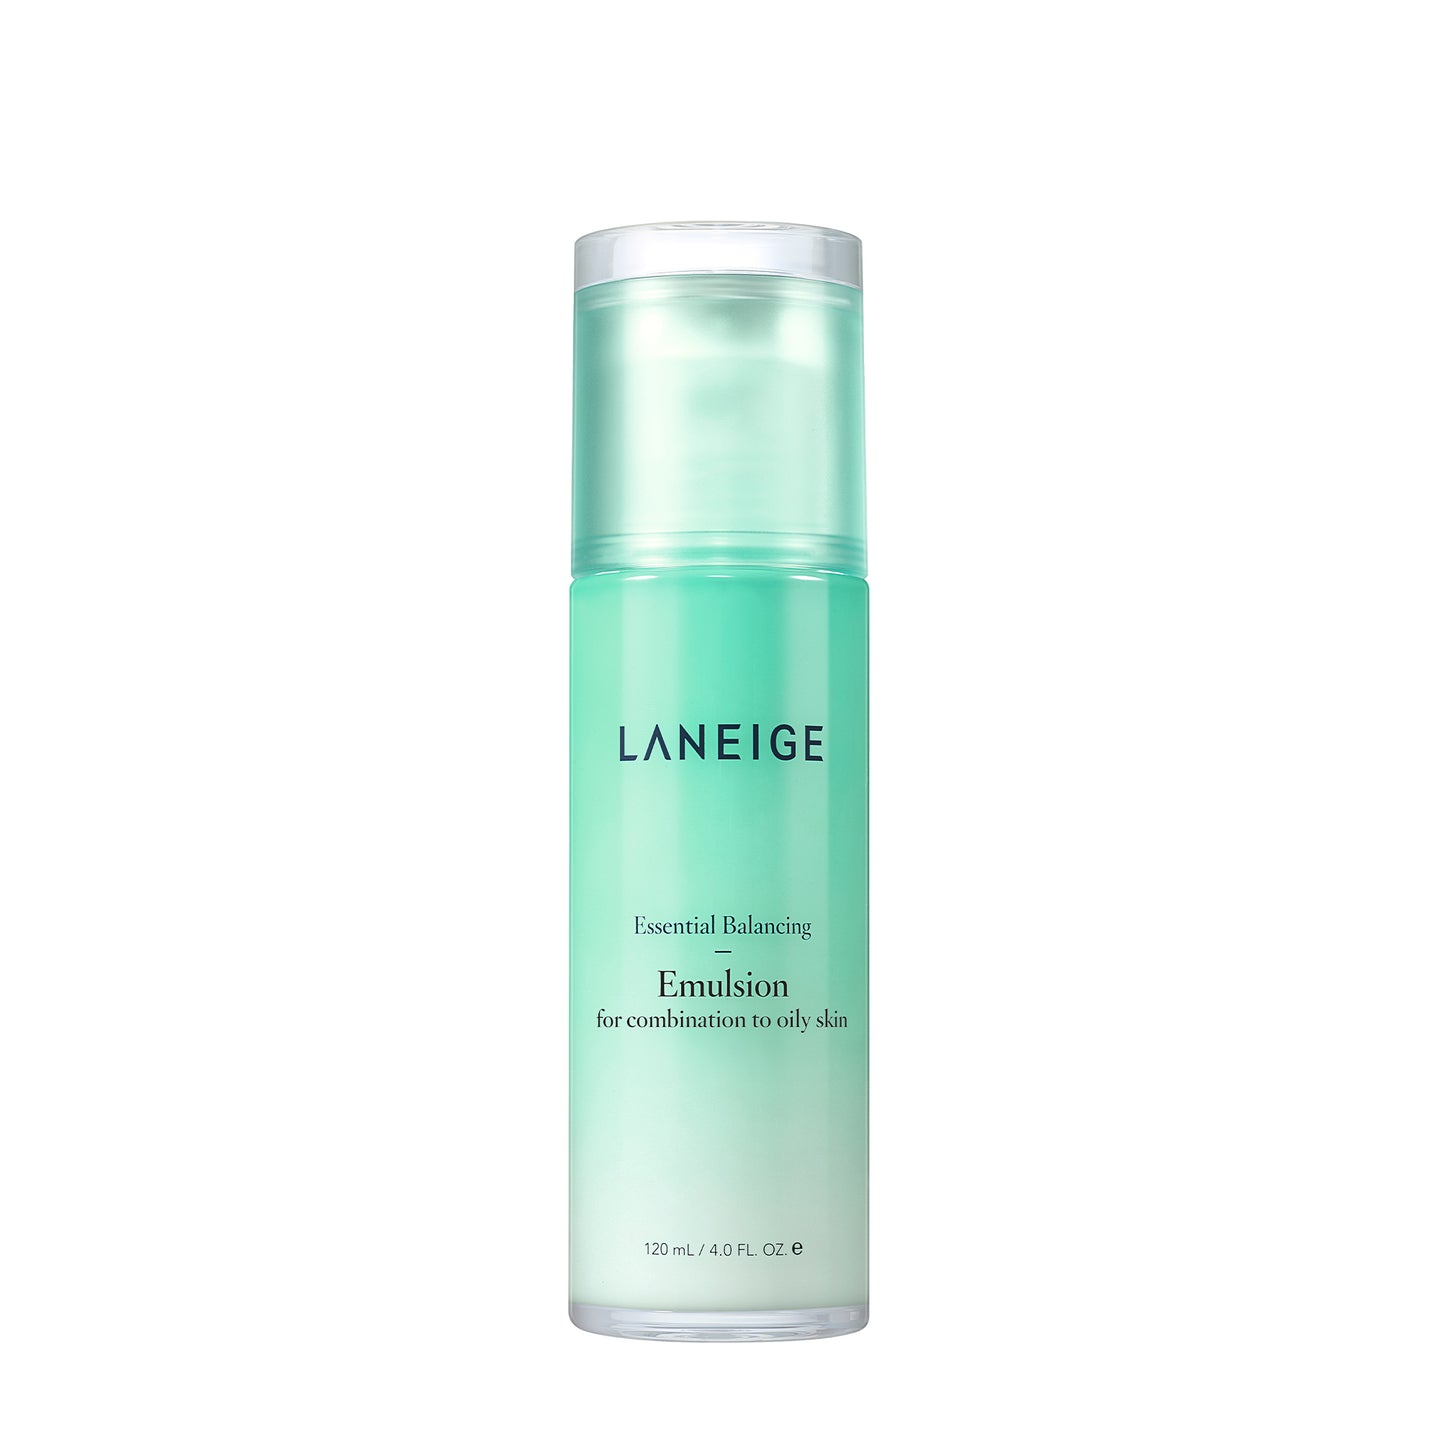 Essential Balancing Emulsion for Combination to Oily Skin